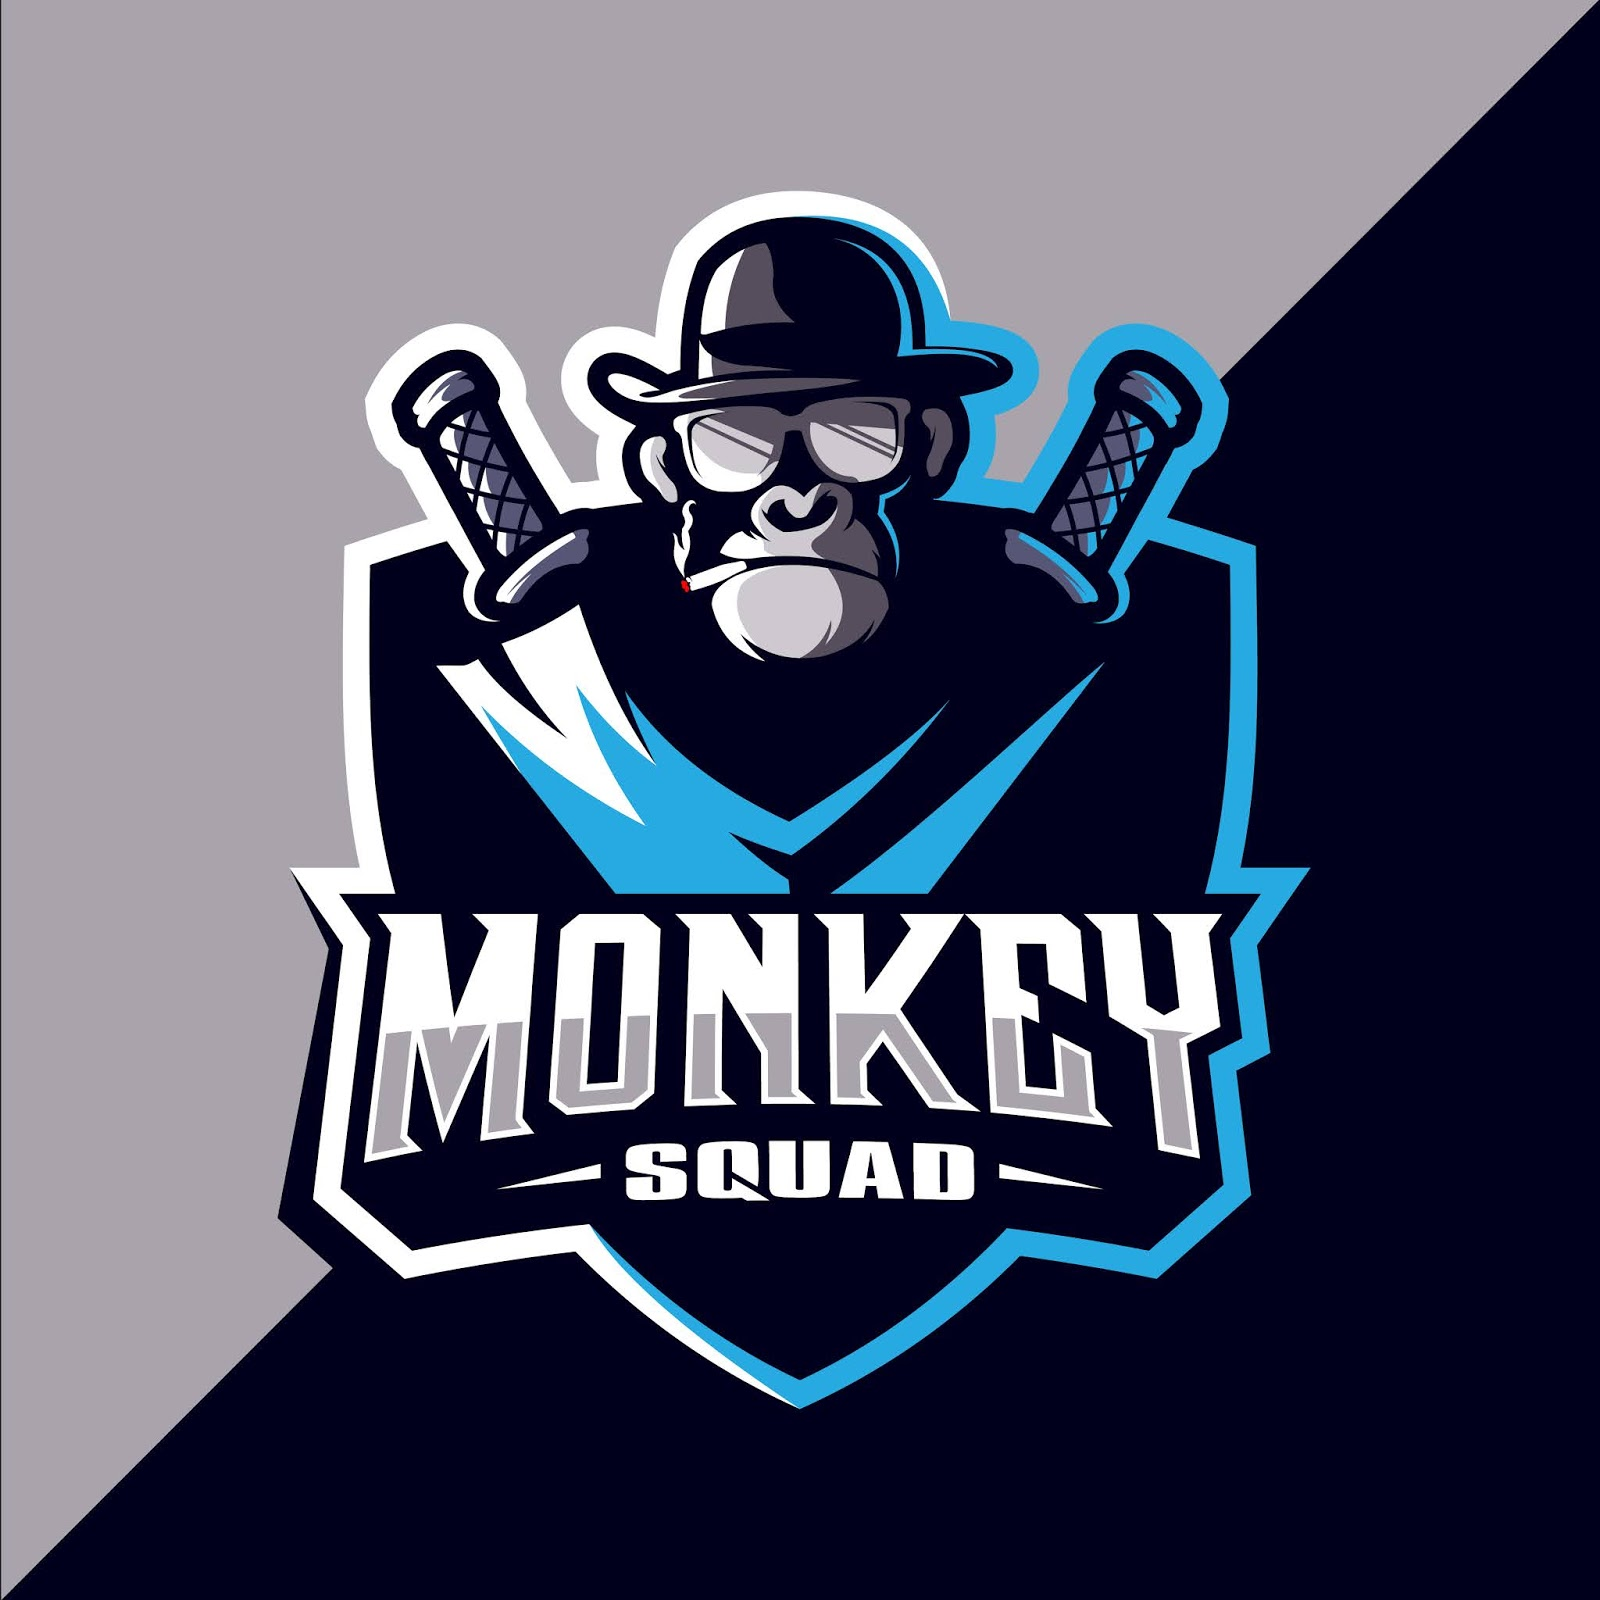 Monkey Esport Mascot Logo Design Free Download Vector CDR, AI, EPS and PNG Formats